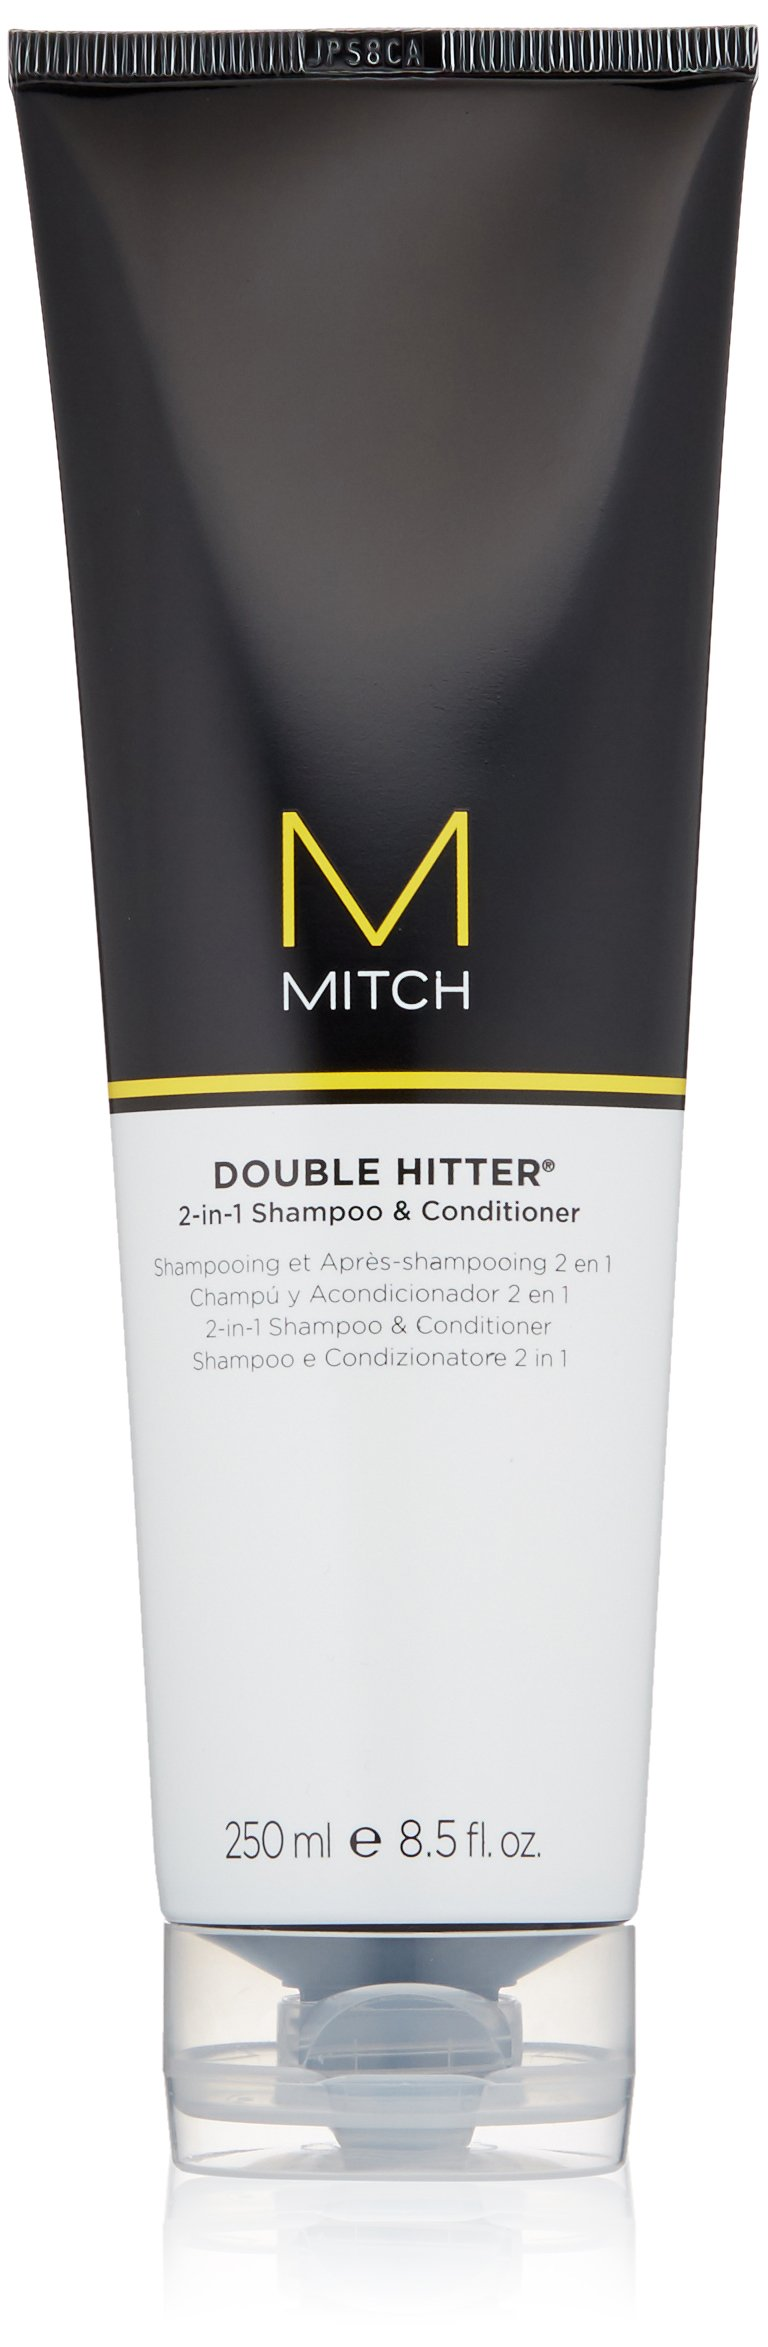 MITCH Double Hitter 2-in-1 Shampoo and Conditioner by Mitch